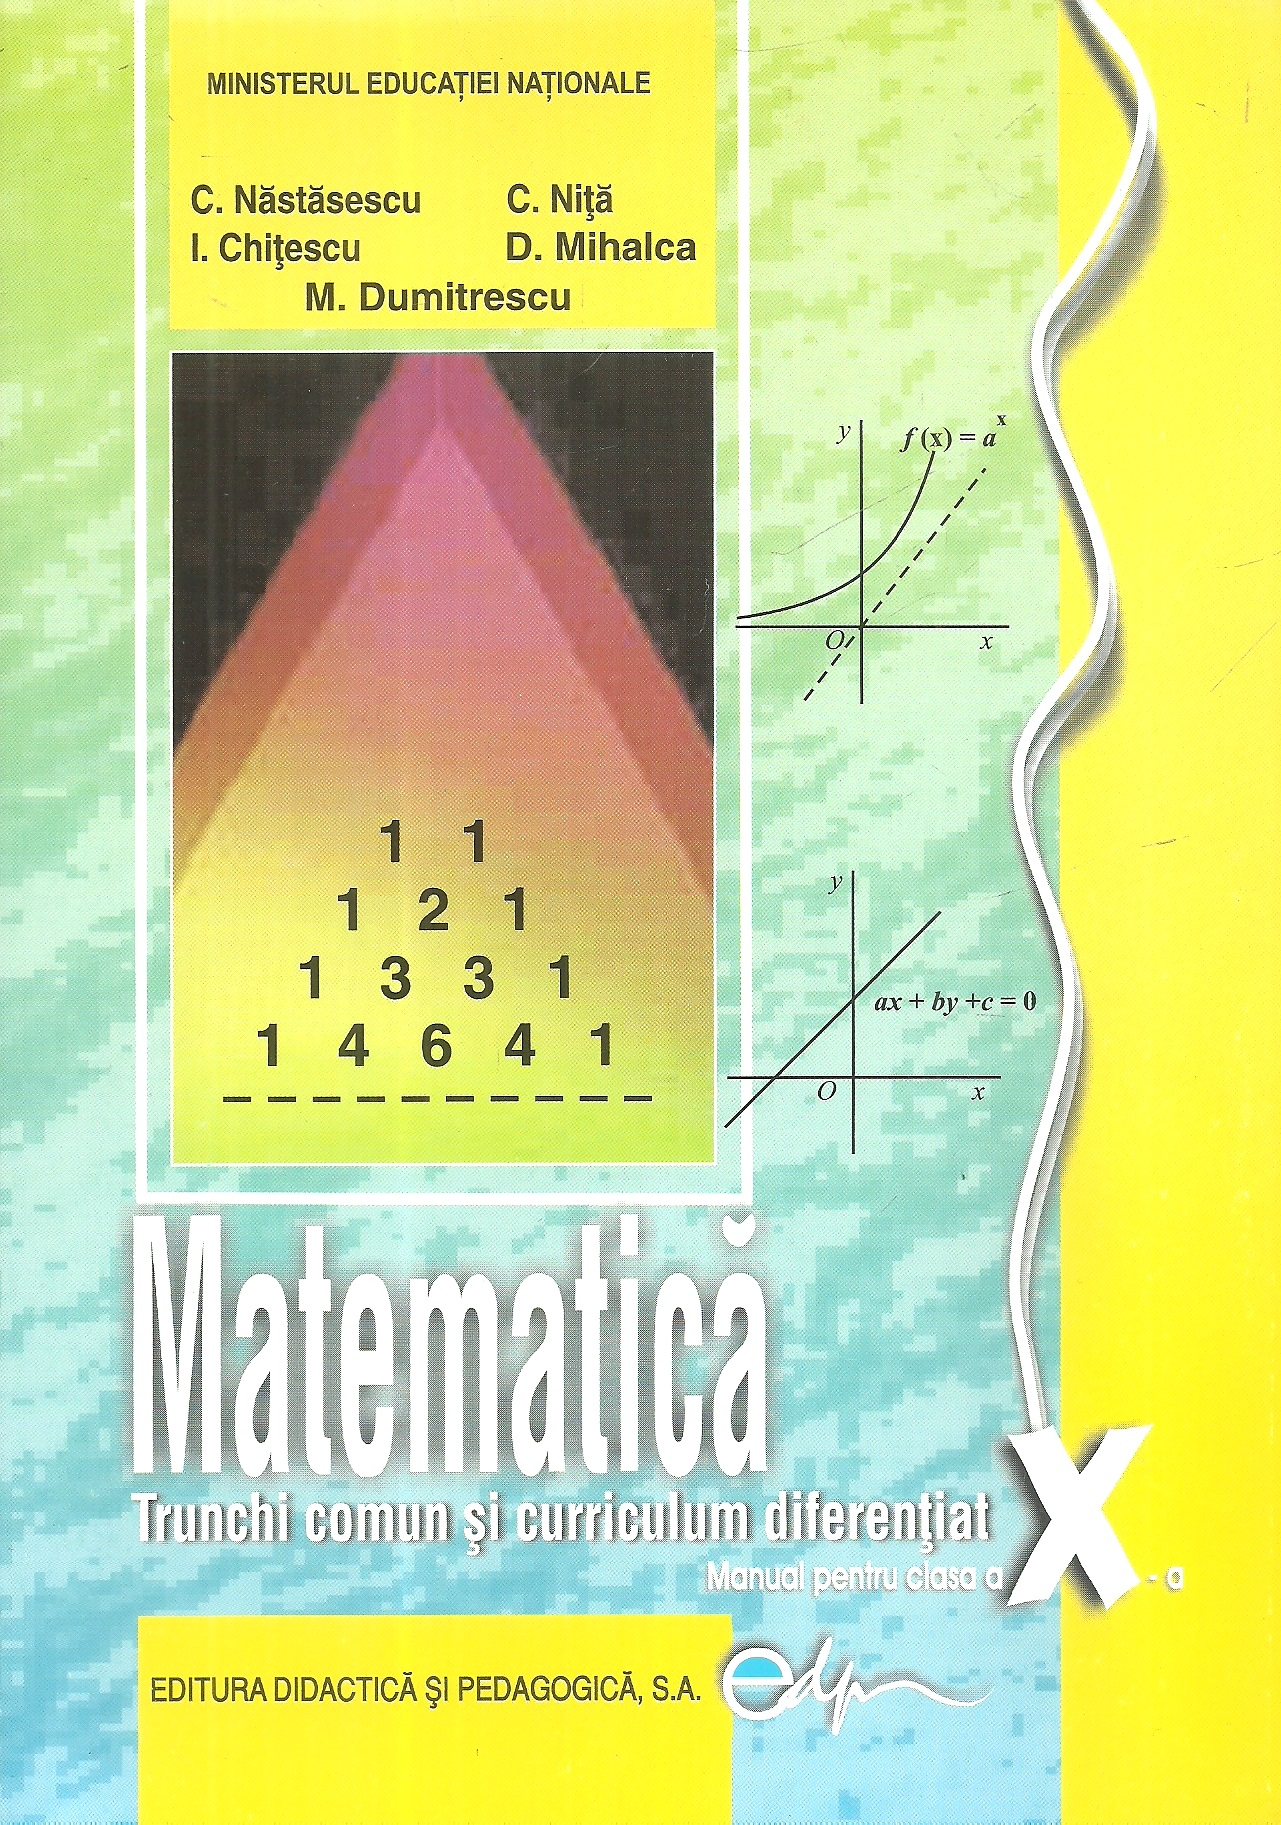 Matematica Trunchi comun curriculum diferentiat